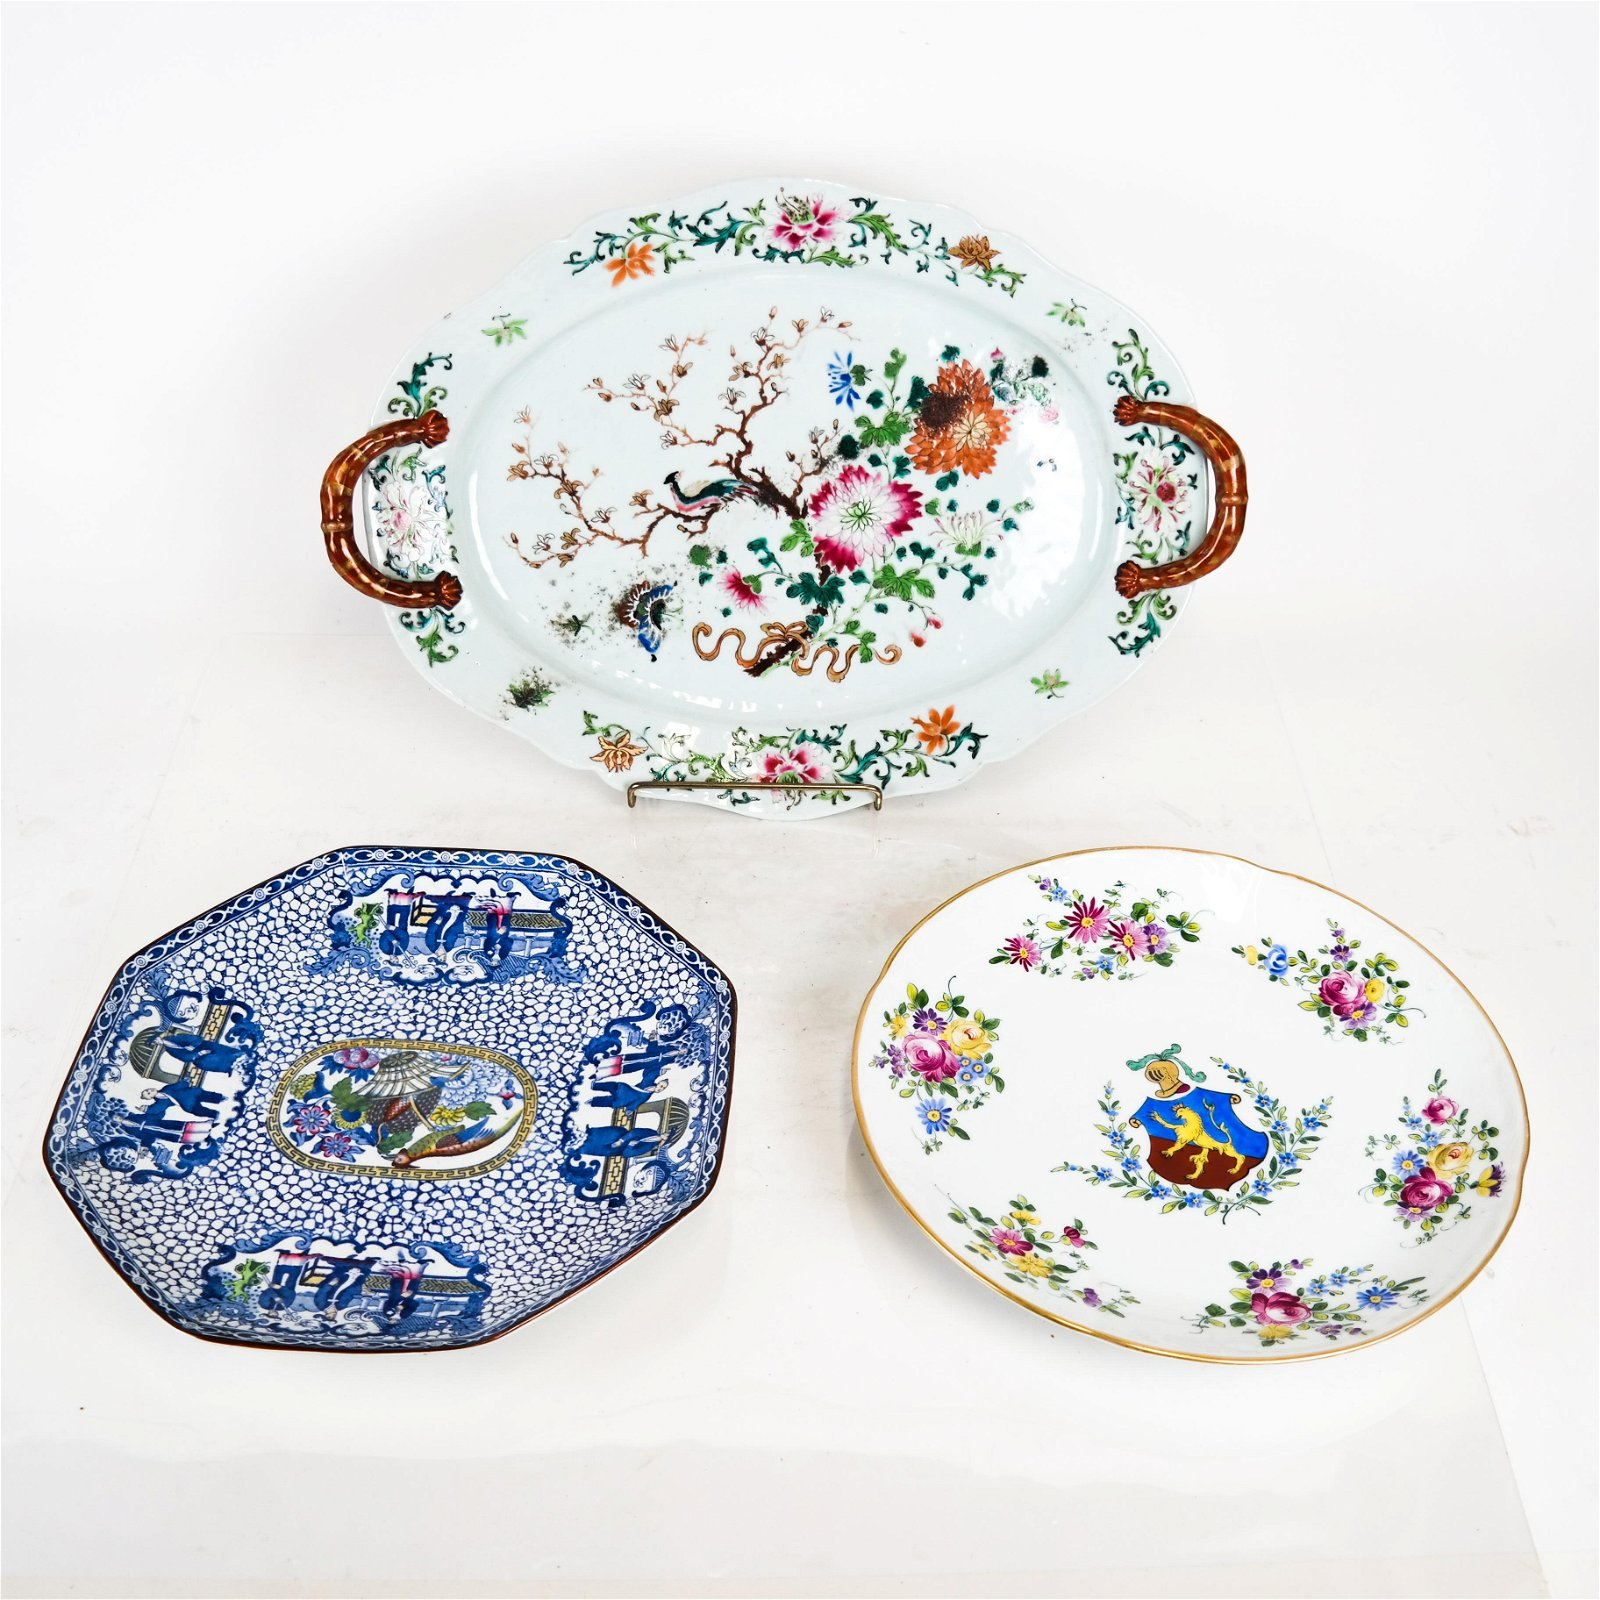 3 Items of English Porcelain Pottery